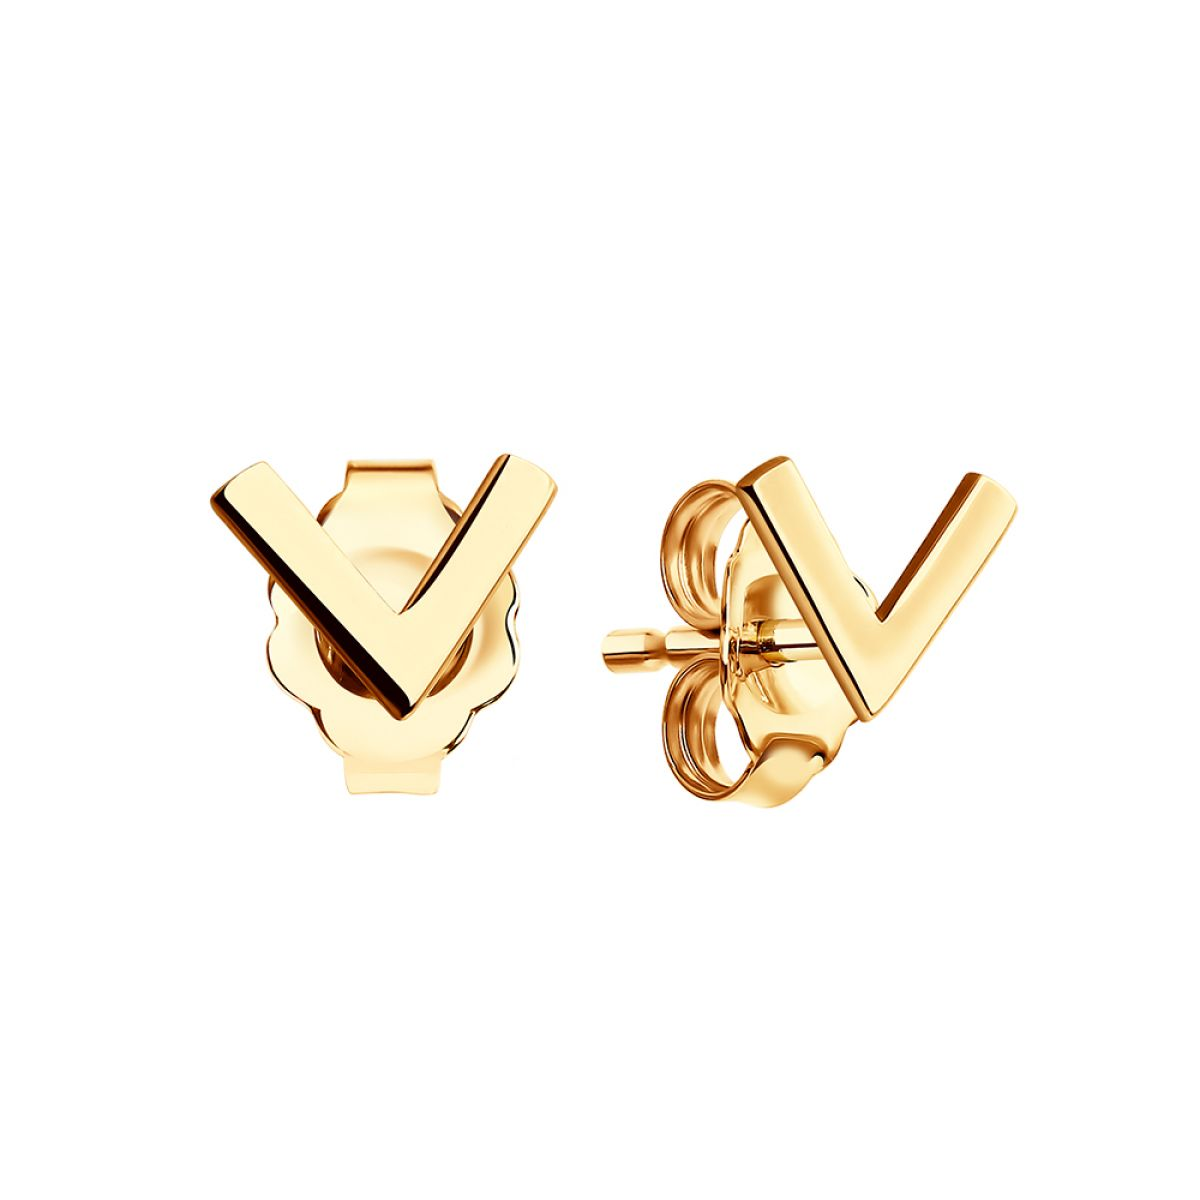 jewellery earrings wavey sale white carat the shop gold stud terms of diamond